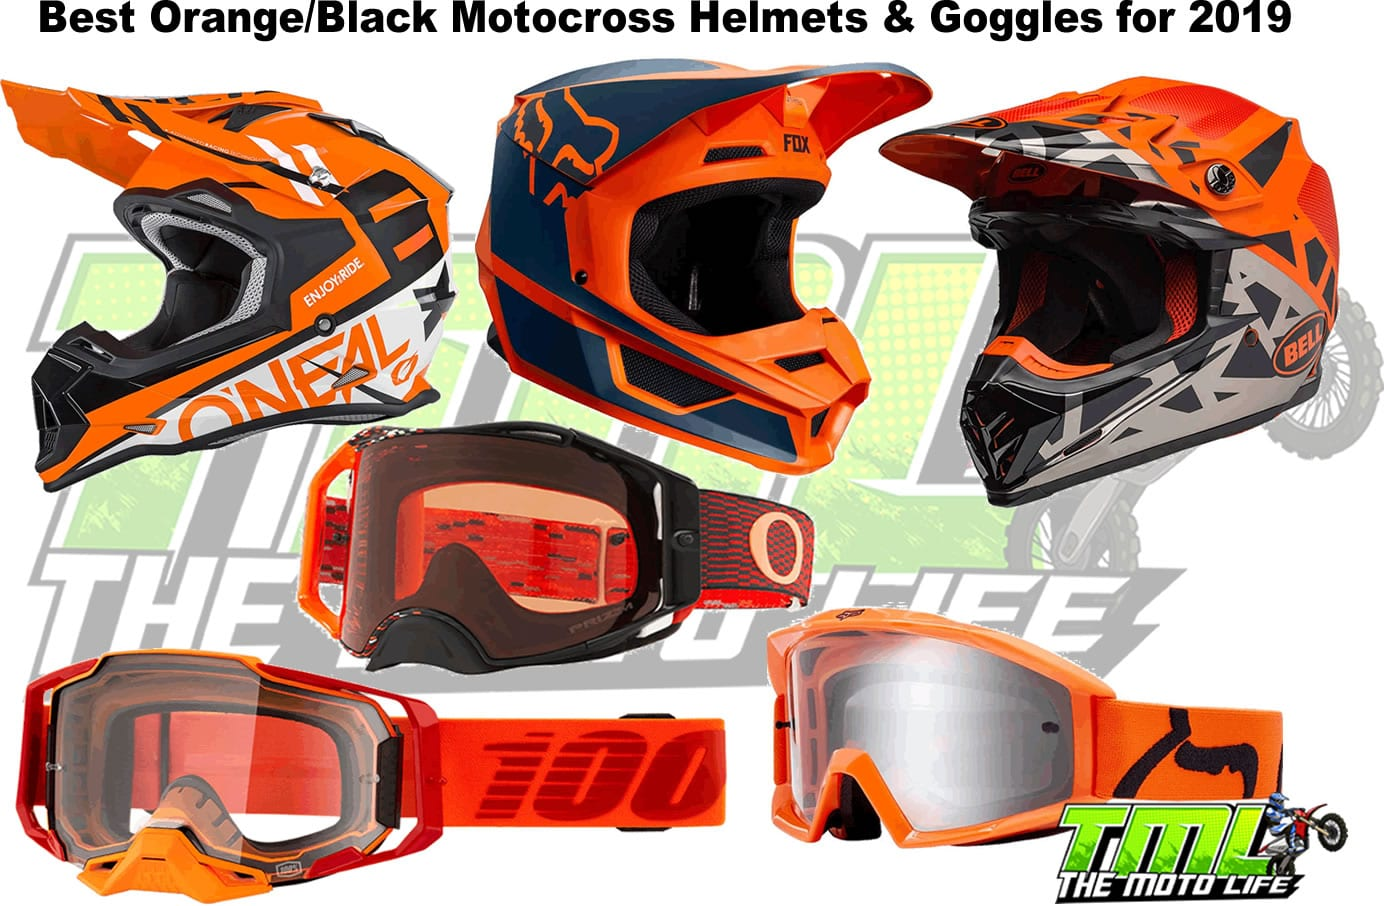 orange and black dirt bike helmets and gear 2019